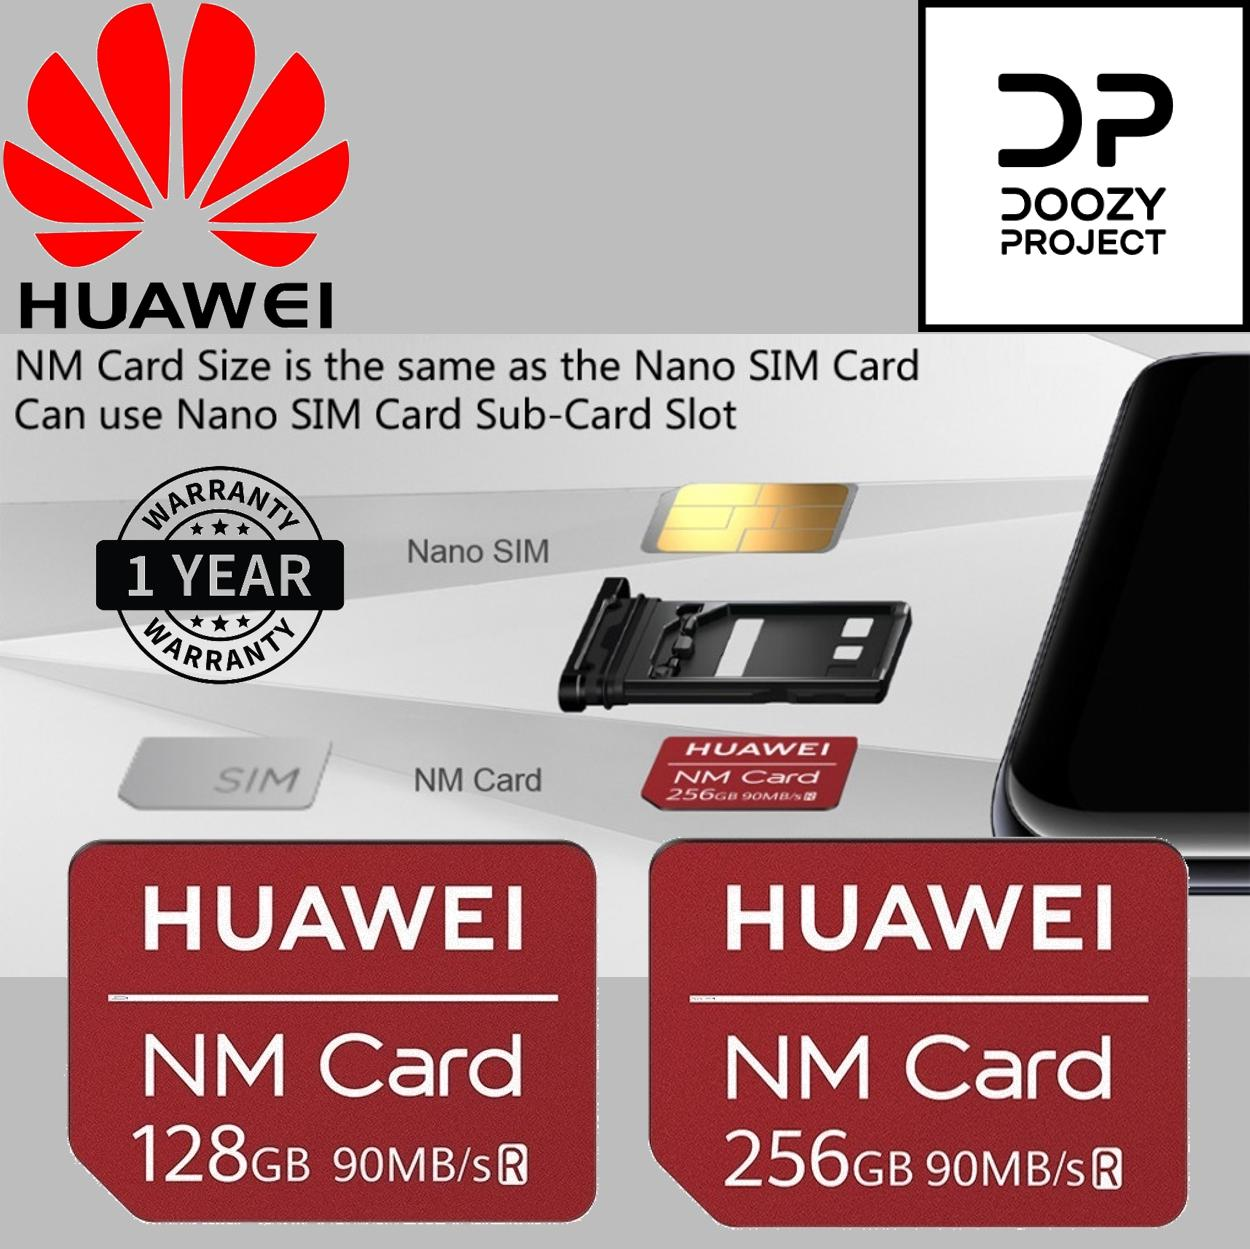 Huawei Nano Memory card NM card / 90MB/s 128GB/256GB Local 1 Year Warranty,  Suitable for Huawei Mate 20, Mate 20 Pro, Mate 20 X